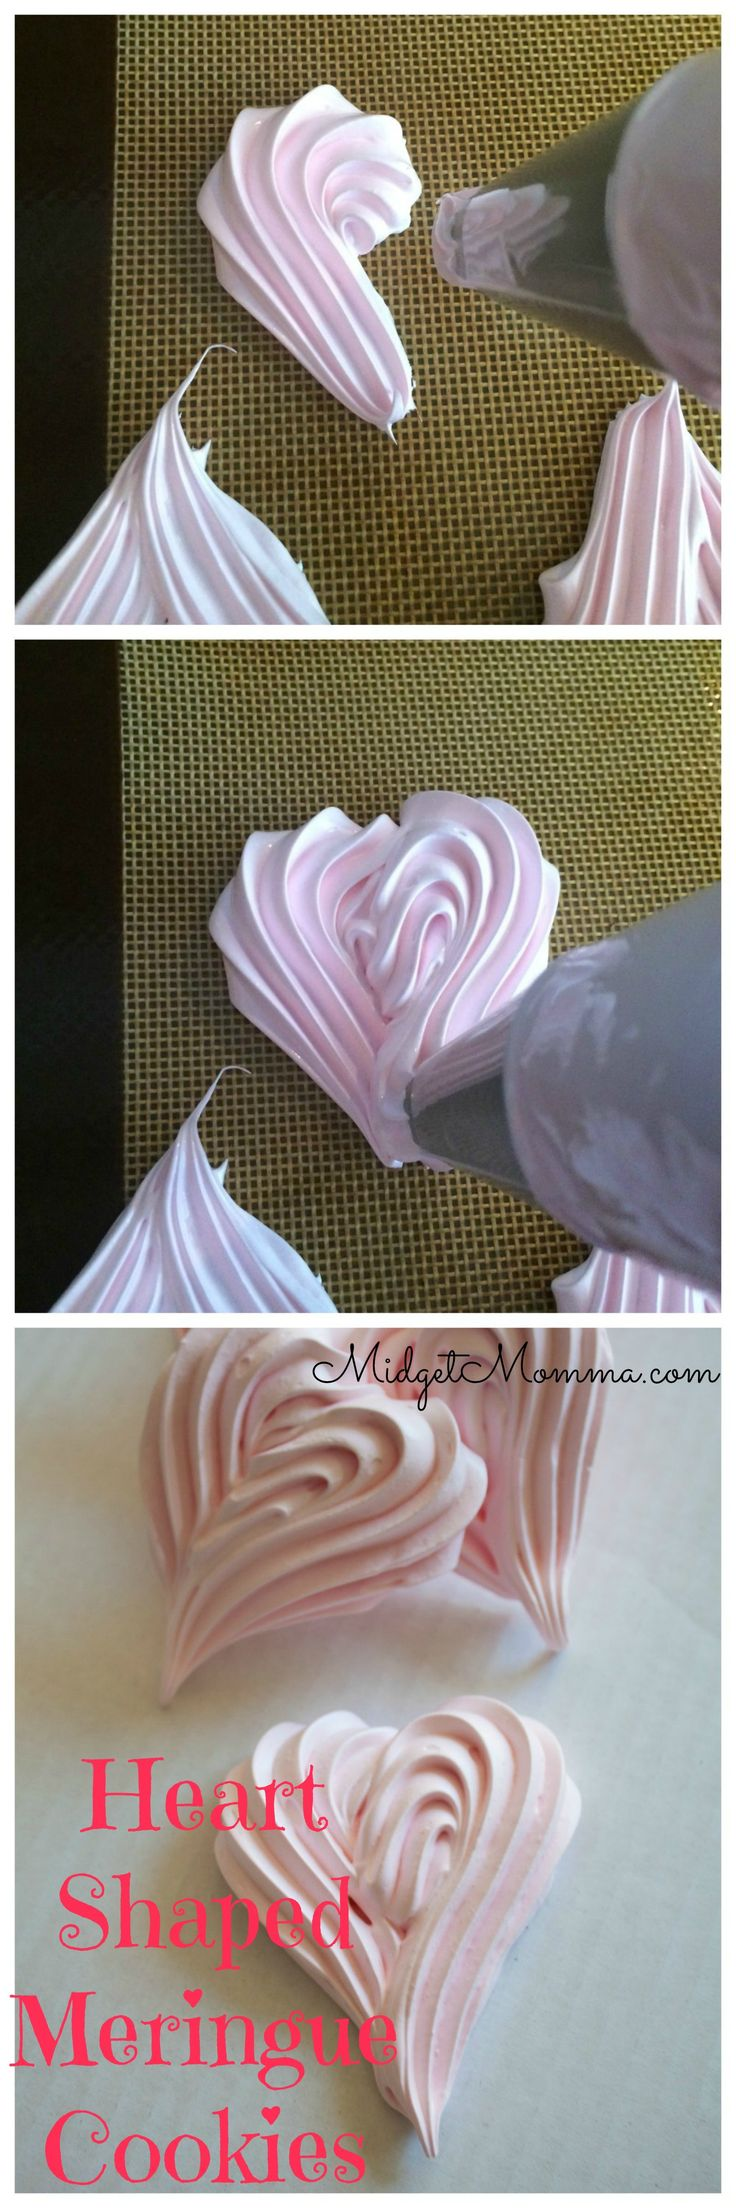 These Meringue Cookies are great for Valentine's Day since they are shaped like hearts! They are a tasty cookie that is the perfect Valentine's Day cookie to make. They look so fancy when they are all boxed up or sitting on the table that they would make a great Valentine's Day Dessert too. Shaping them in to hearts gives them the special touch that makes them perfect for Valentine's Day.